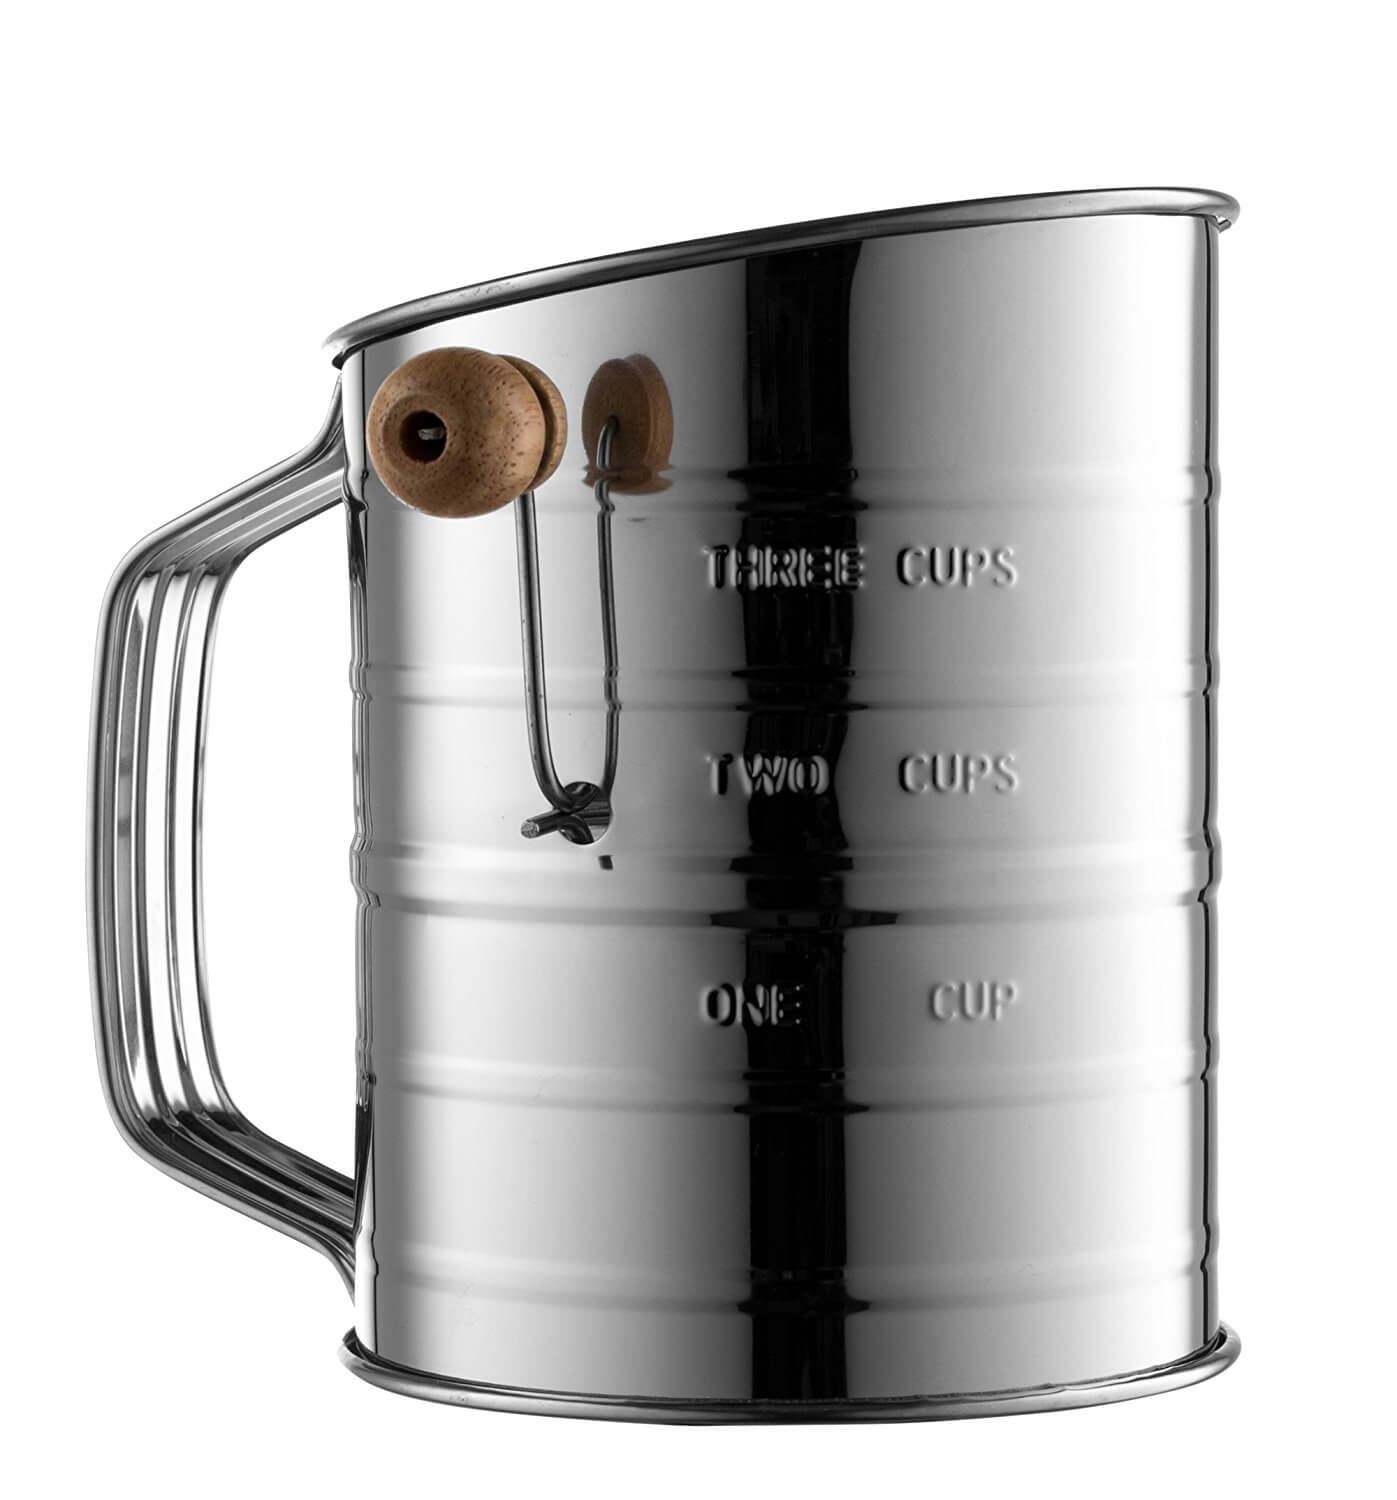 Bellemain Stainless Steel 3 Cup Flour Sifter (A-)